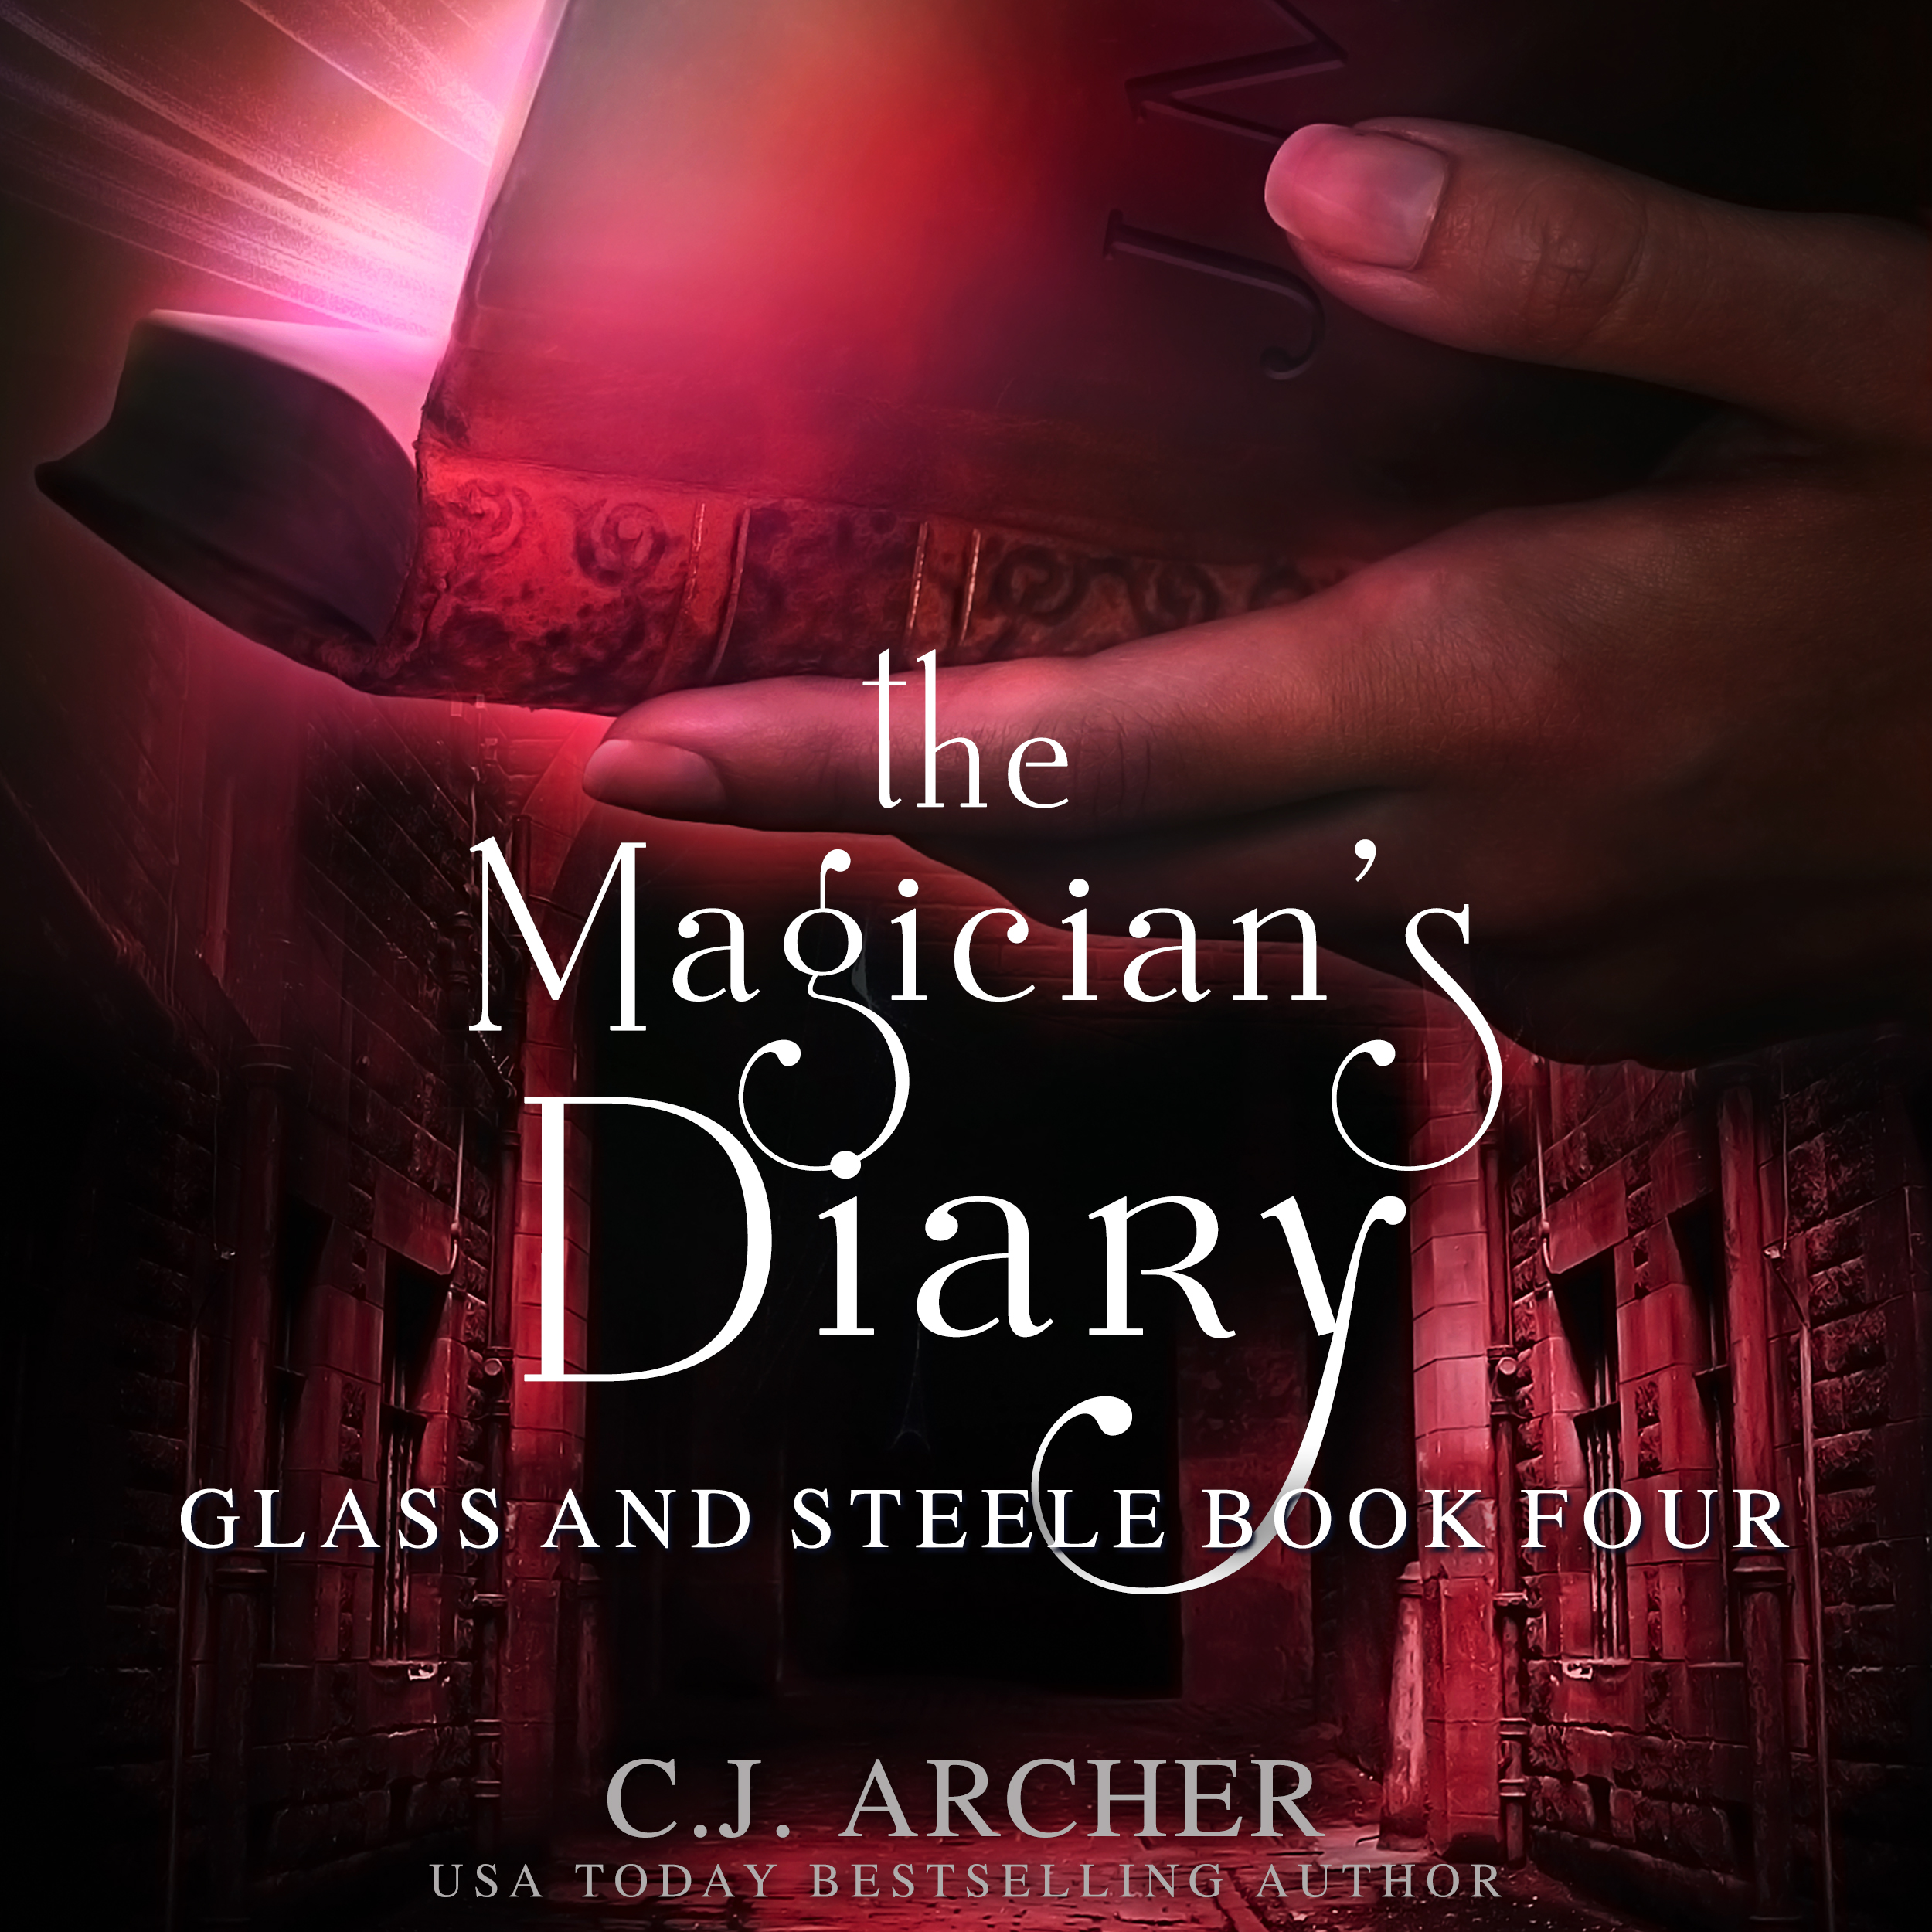 The Magician's Diary audiobook by CJ Archer